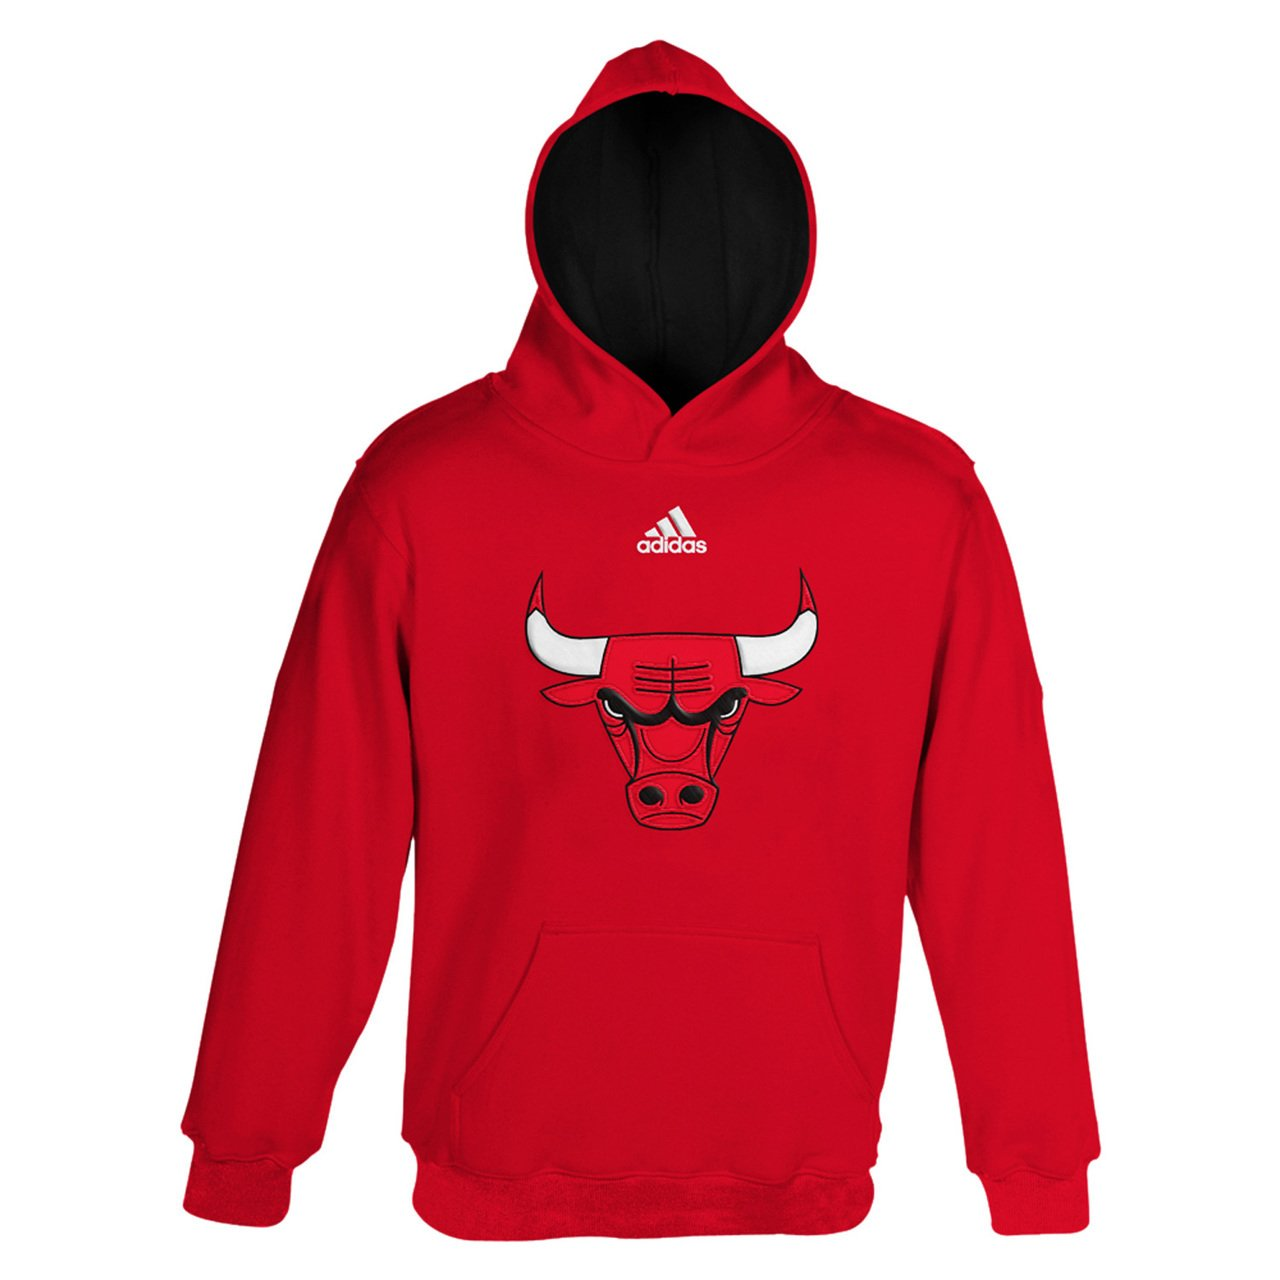 Amazon.com   NBA Youth 8-20 Chicago Bulls Prime Pullover Hoodie -Red-M(10-12)    Sports Fan Sweatshirts   Sports   Outdoors 4f79c99c8